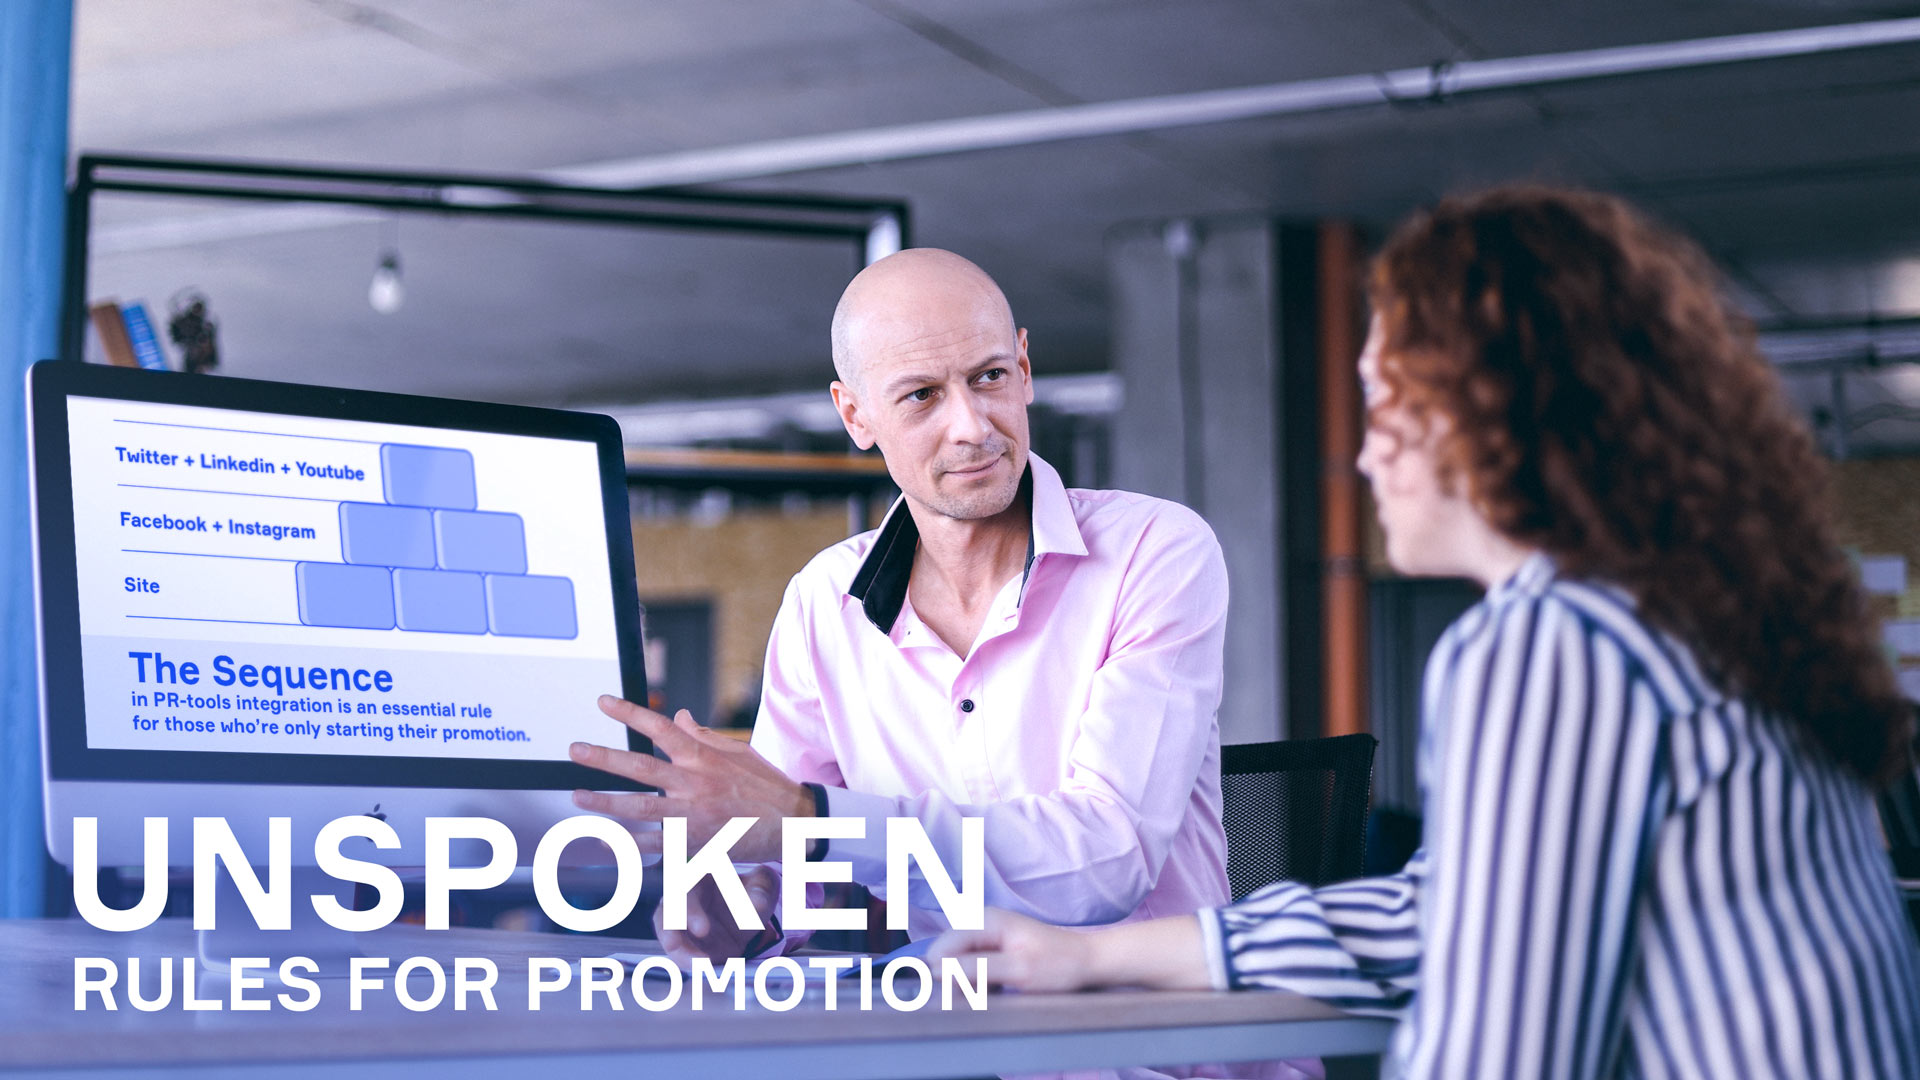 Unspoken Rule For Promotion